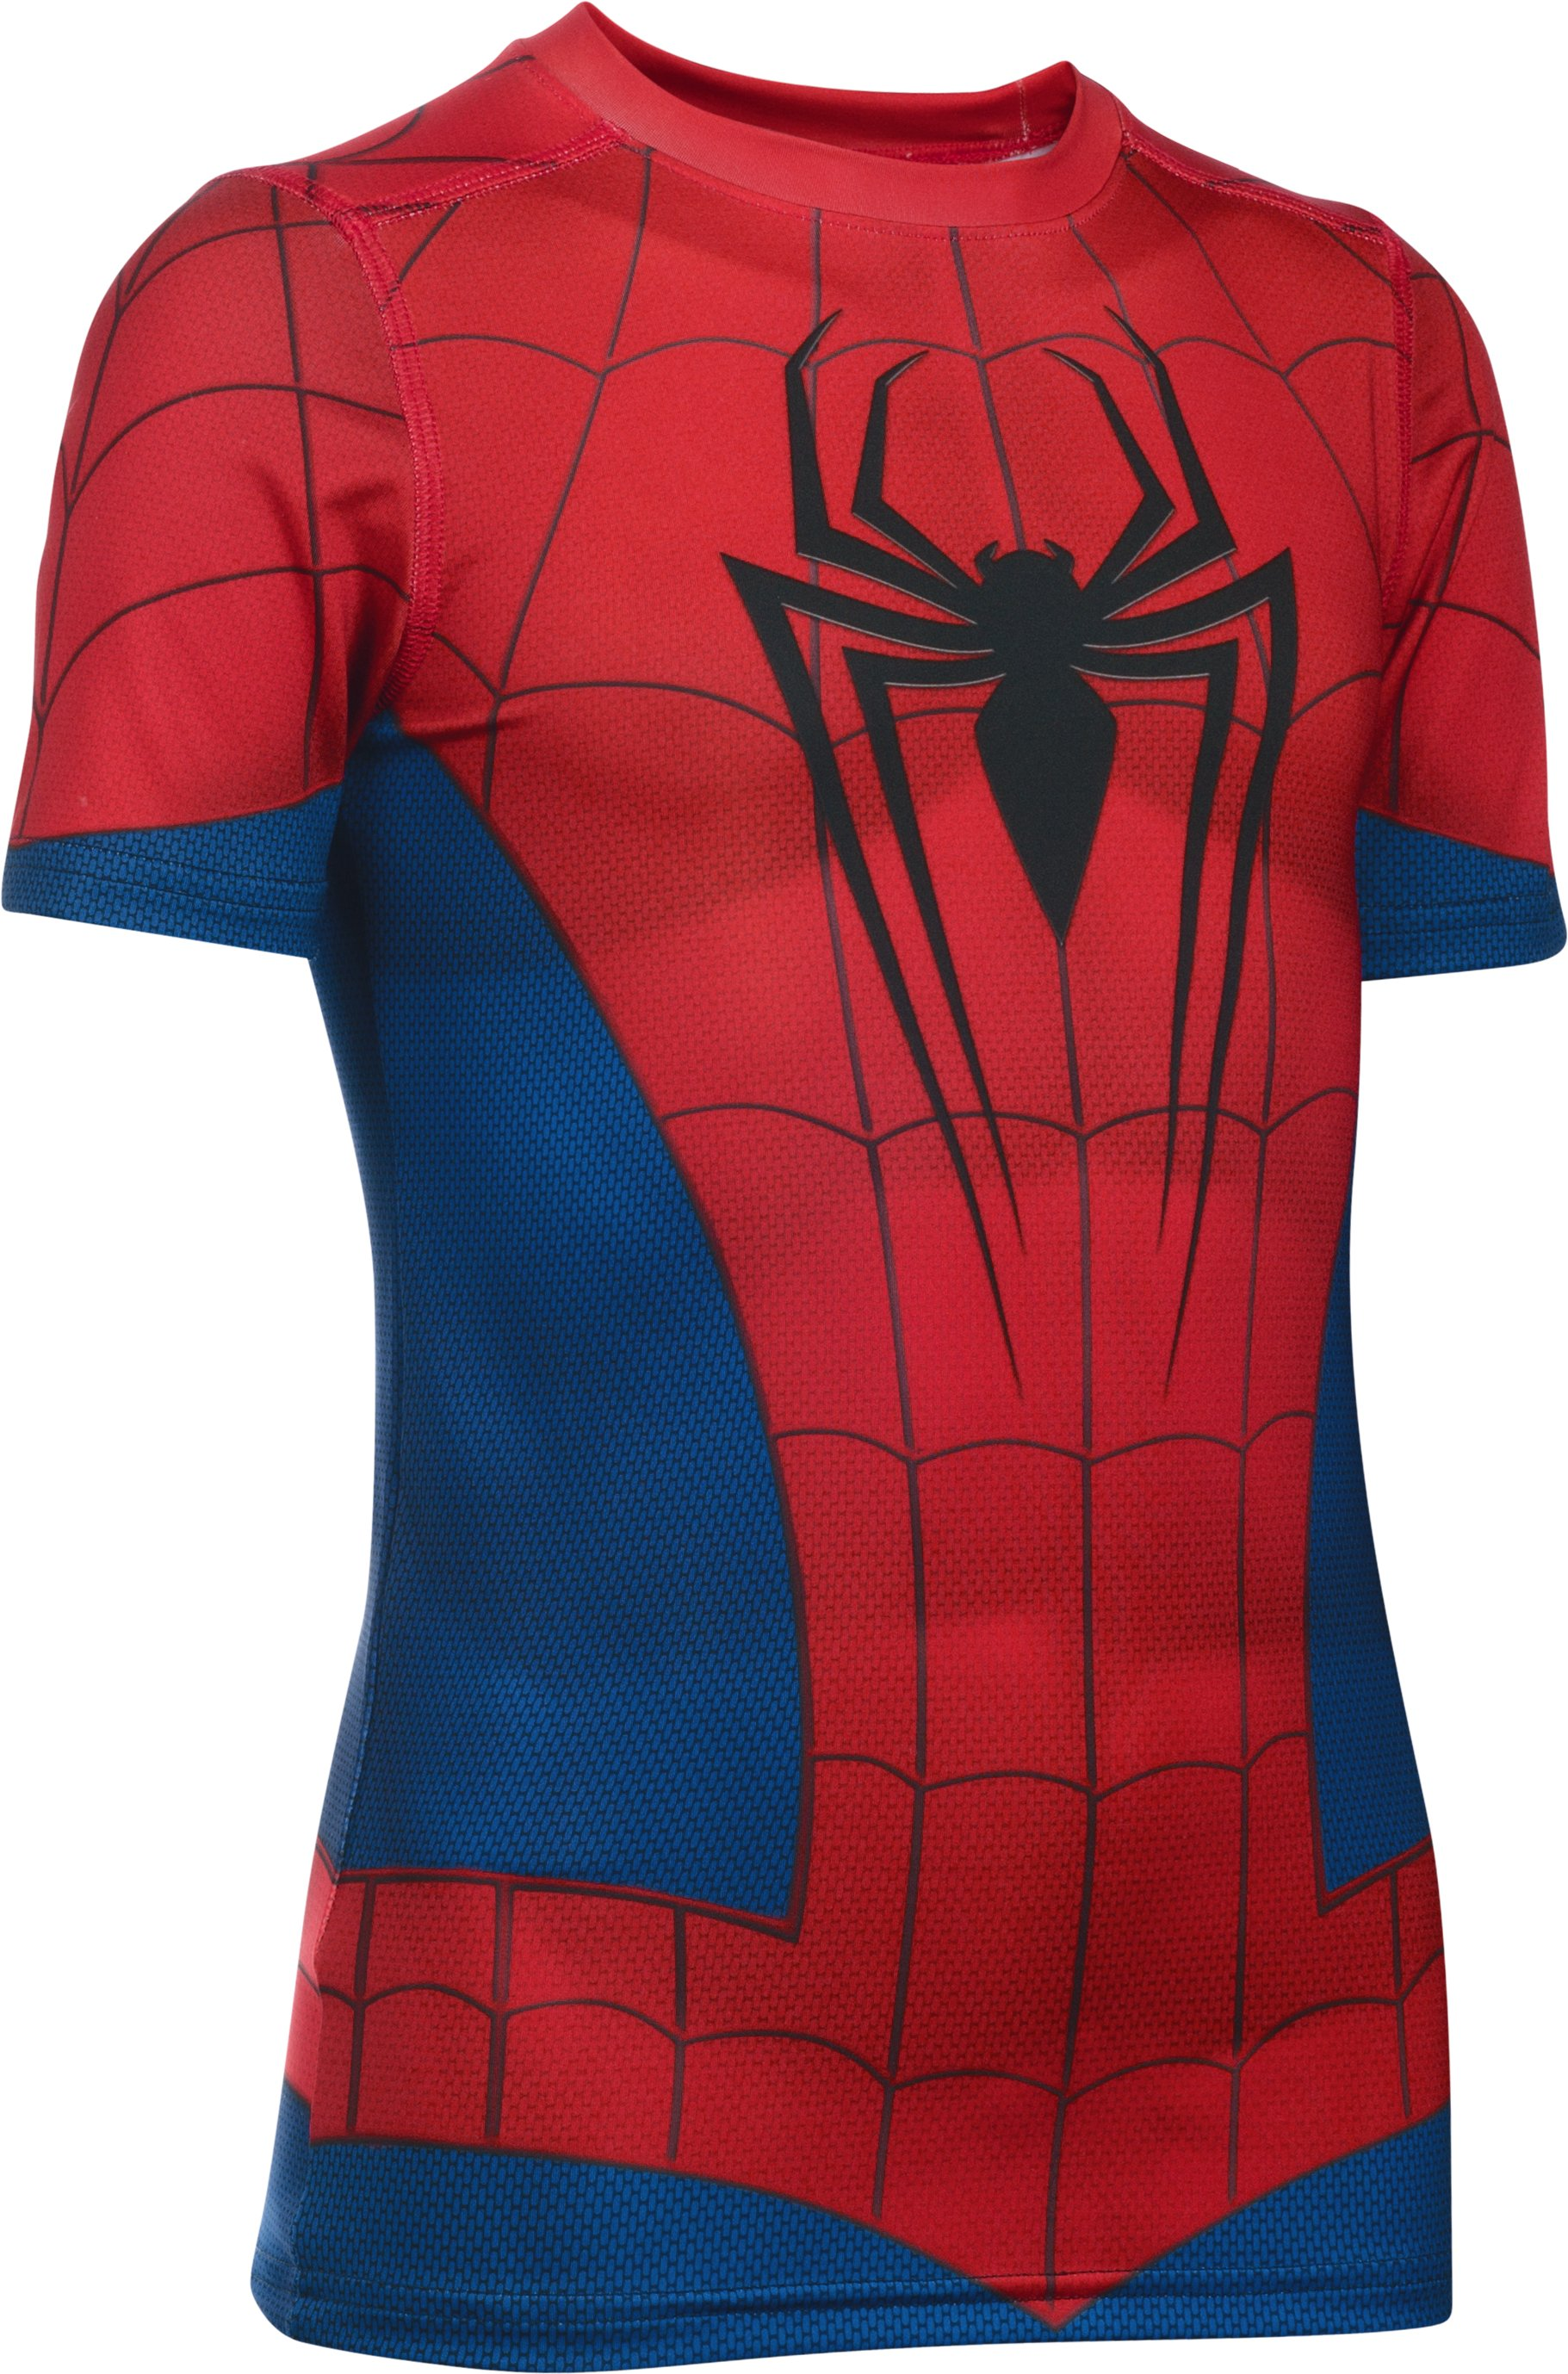 youth large shirts Boys' Under Armour® Alter Ego Spider-Man Fitted Shirt The fabric, although not compression was nice and stretchy, so quite comfortable.